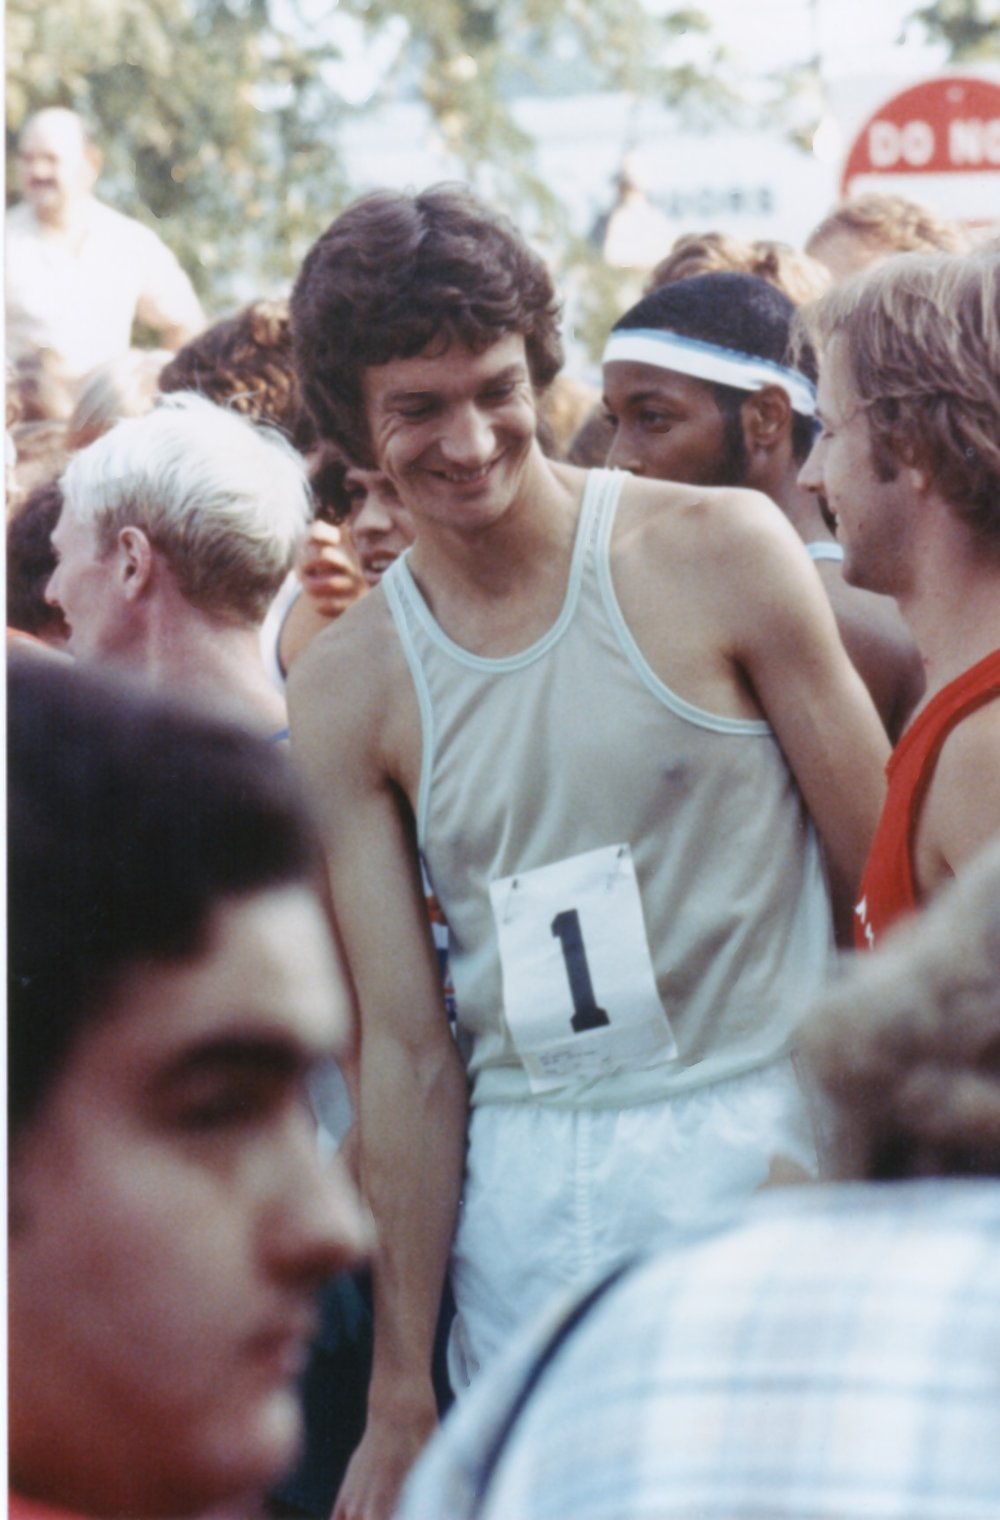 """Defending champion Don Kardong arrived on the start line of the 1977 AJC Peachtree Road Race wearing bib number """"1"""". He would finish 3rd and the Peachtree would inspire him to start the Lilac Bloomsday 12K. He will retire as race director this year."""